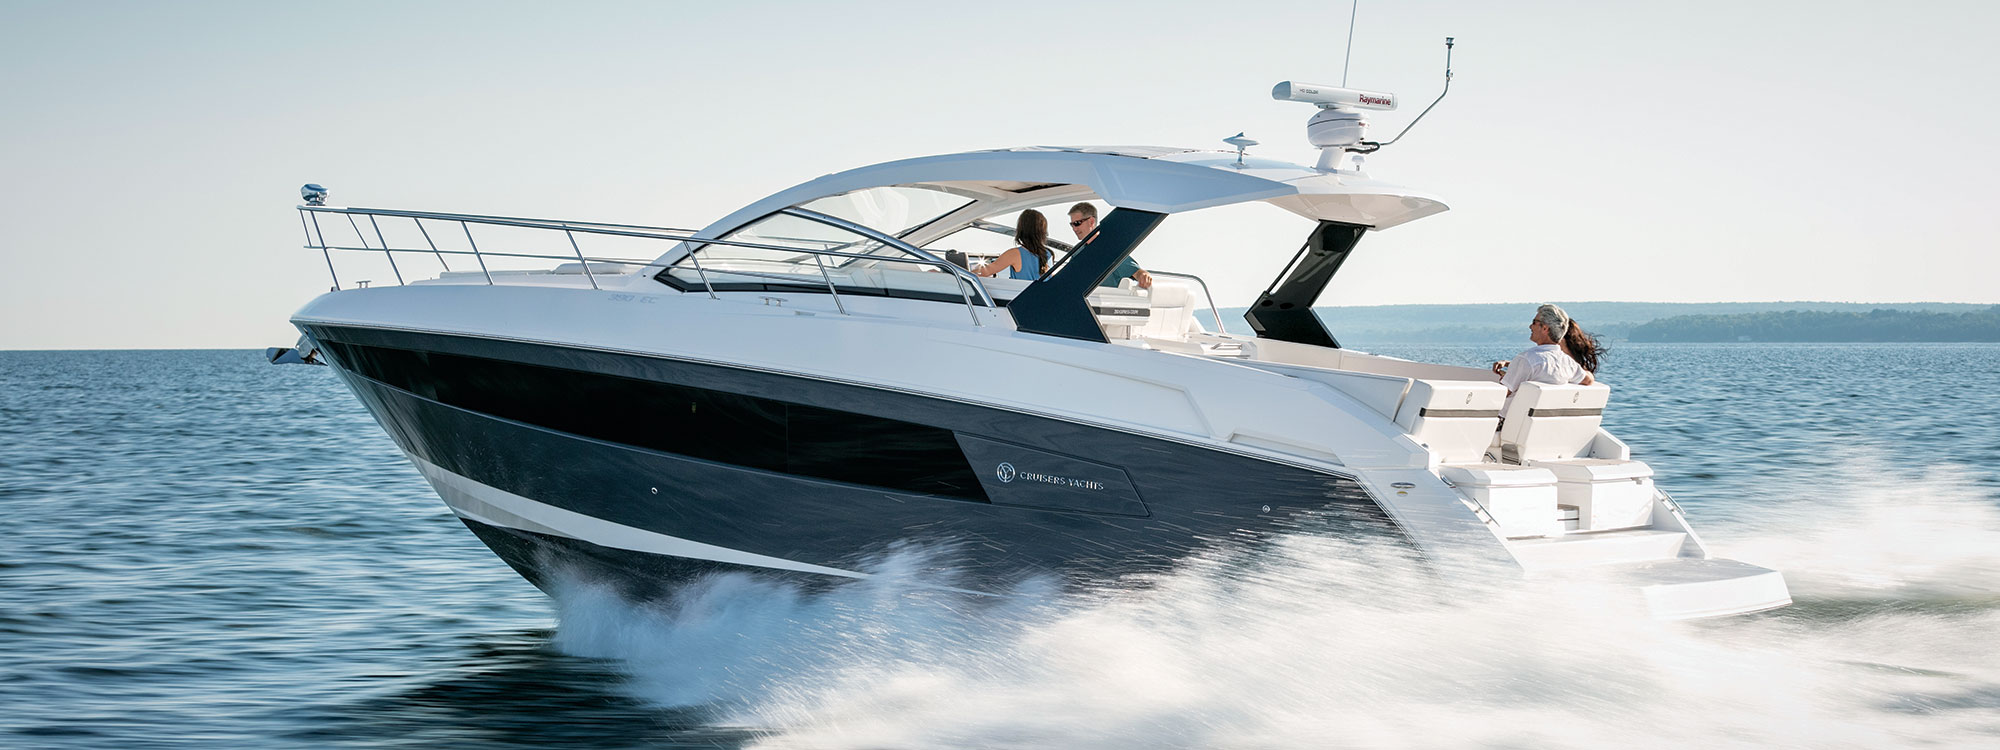 Cruisers Yachts 39 Express Coupe Boat for sale in San Diego